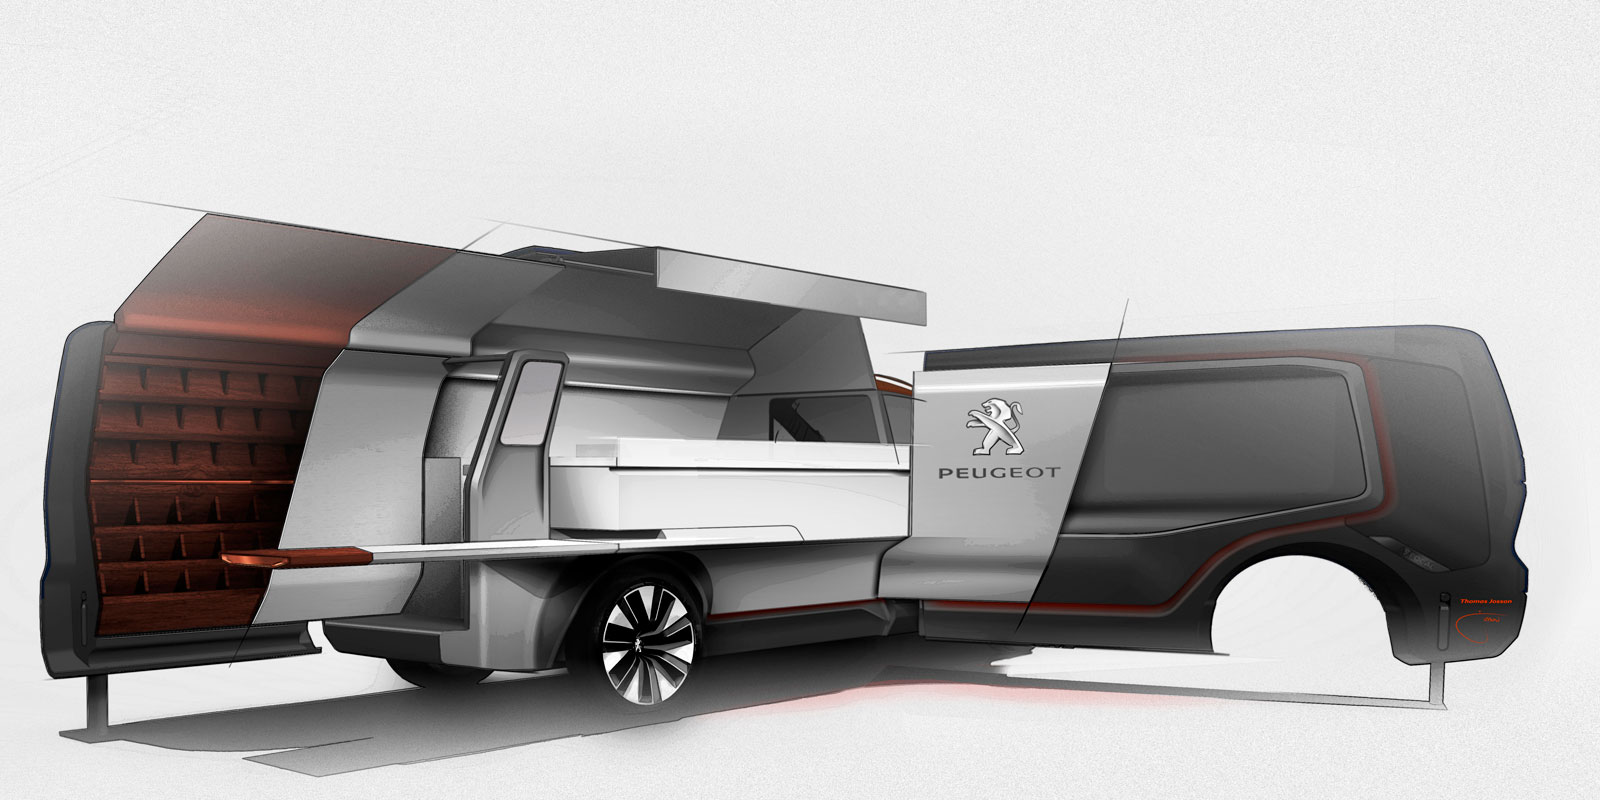 Peugeot foodtruck concept design sketch render car body for Design food truck online